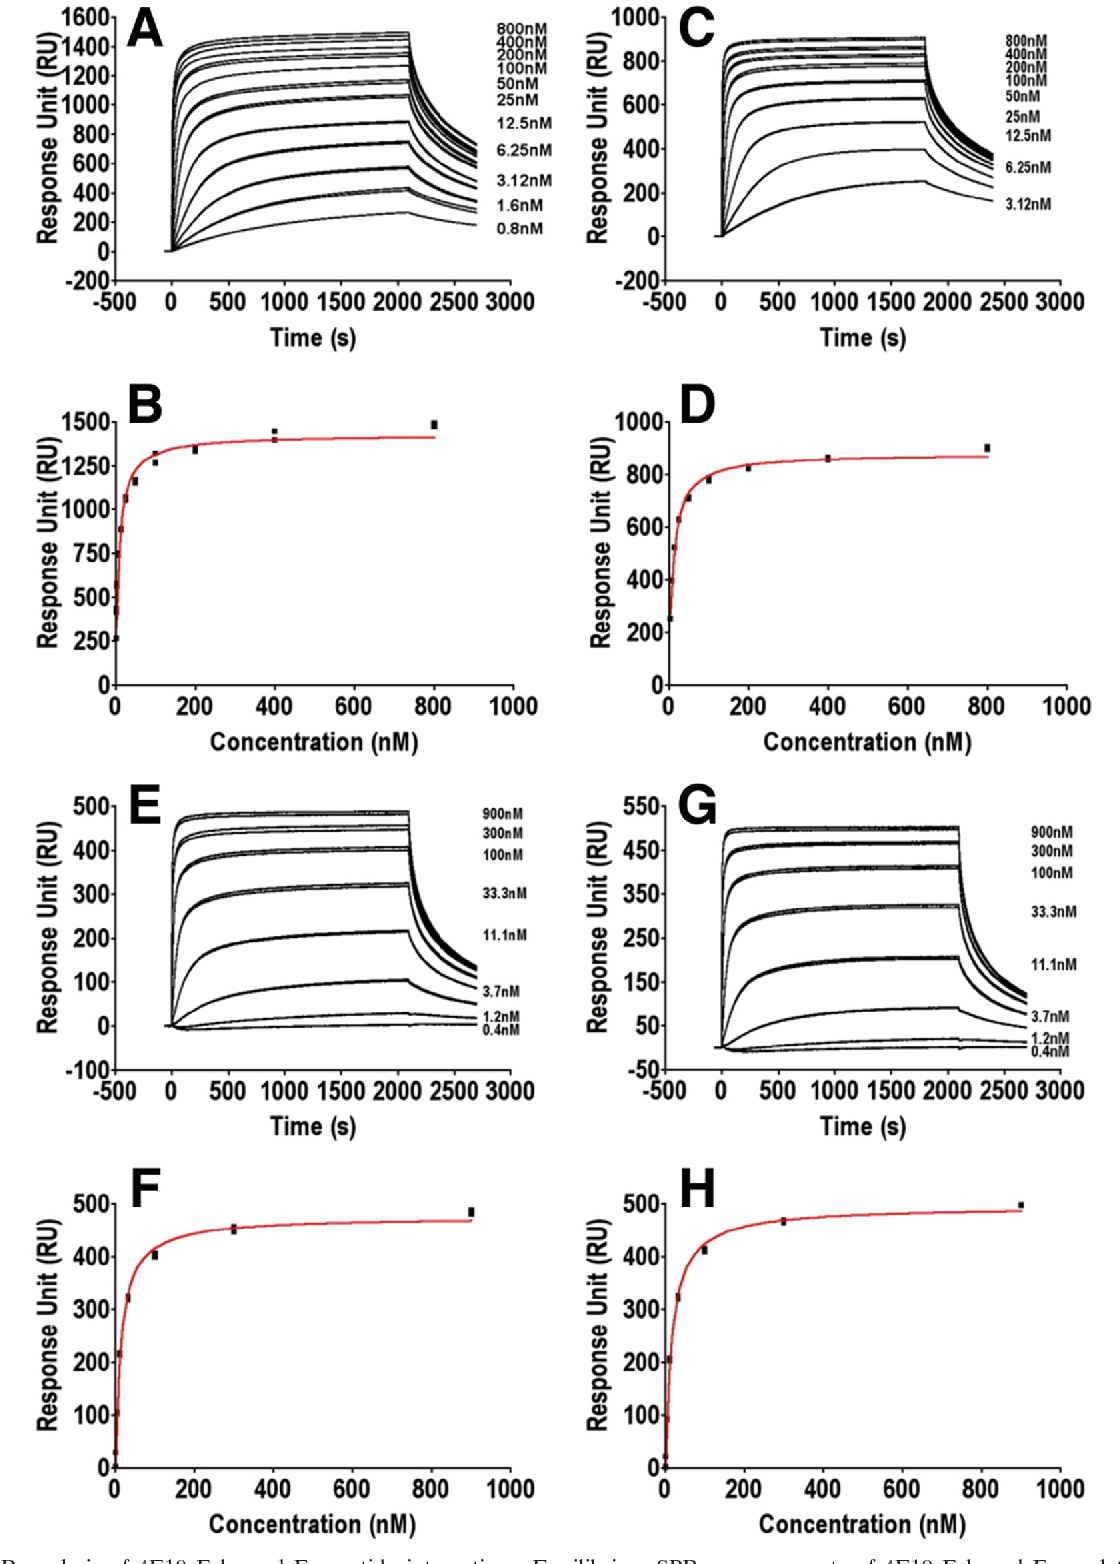 FIG. 5. SPR analysis of 4E10 Fab- and Fv-peptide interactions. Equilibrium SPR measurements of 4E10 Fab and Fv analytes binding to chip-coupled SF162 4E10 epitope peptides are shown. All sample injections were carried out in a randomized duplicate run, at 10 l/min for 35 min to reach equilibrium, followed by a 10-min dissociation phase. Double-reference-subtracted SPR responses are shown in panels A, C, E, and G, and corresponding binding analyses are shown in panels B, D, F, and H: Fab4E10 (A and B); Fv4E10wt (C and D); Fv4E10[W(H100)A] (E and F); Fv4E10[G(L50)E] (G and H).